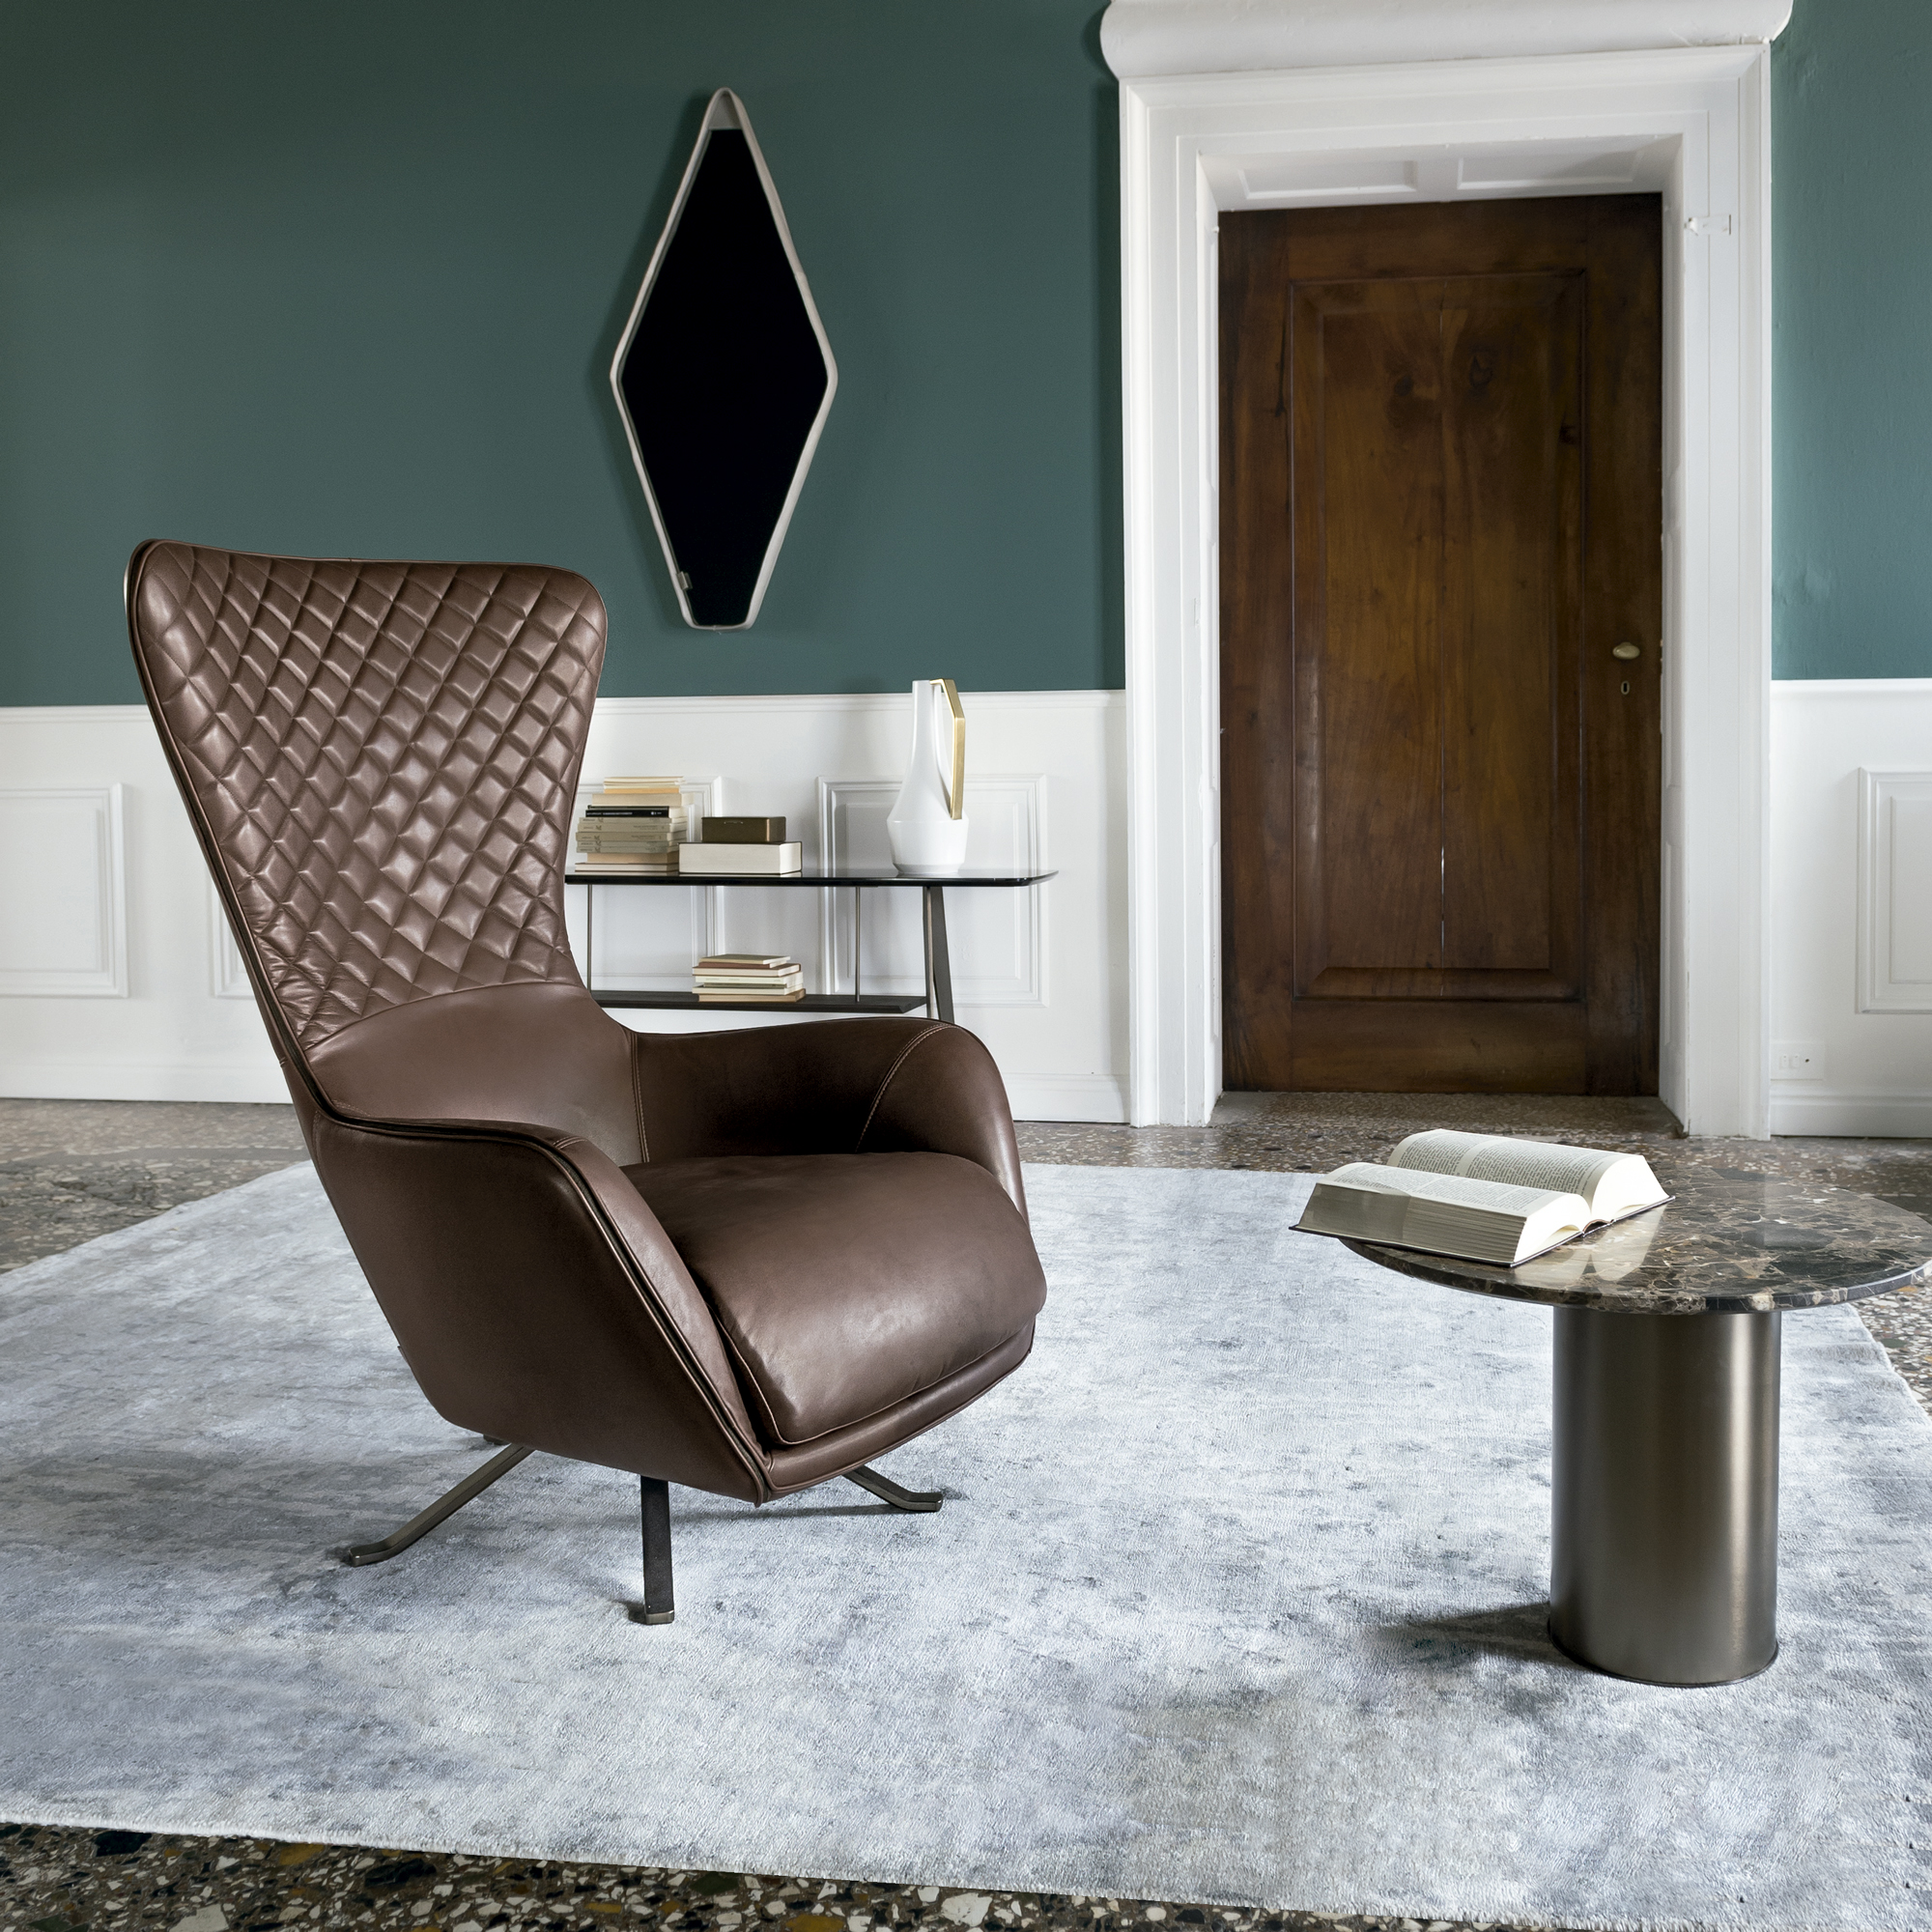 Contemporary Luxury Italian Sin Seaty Lounge Chair